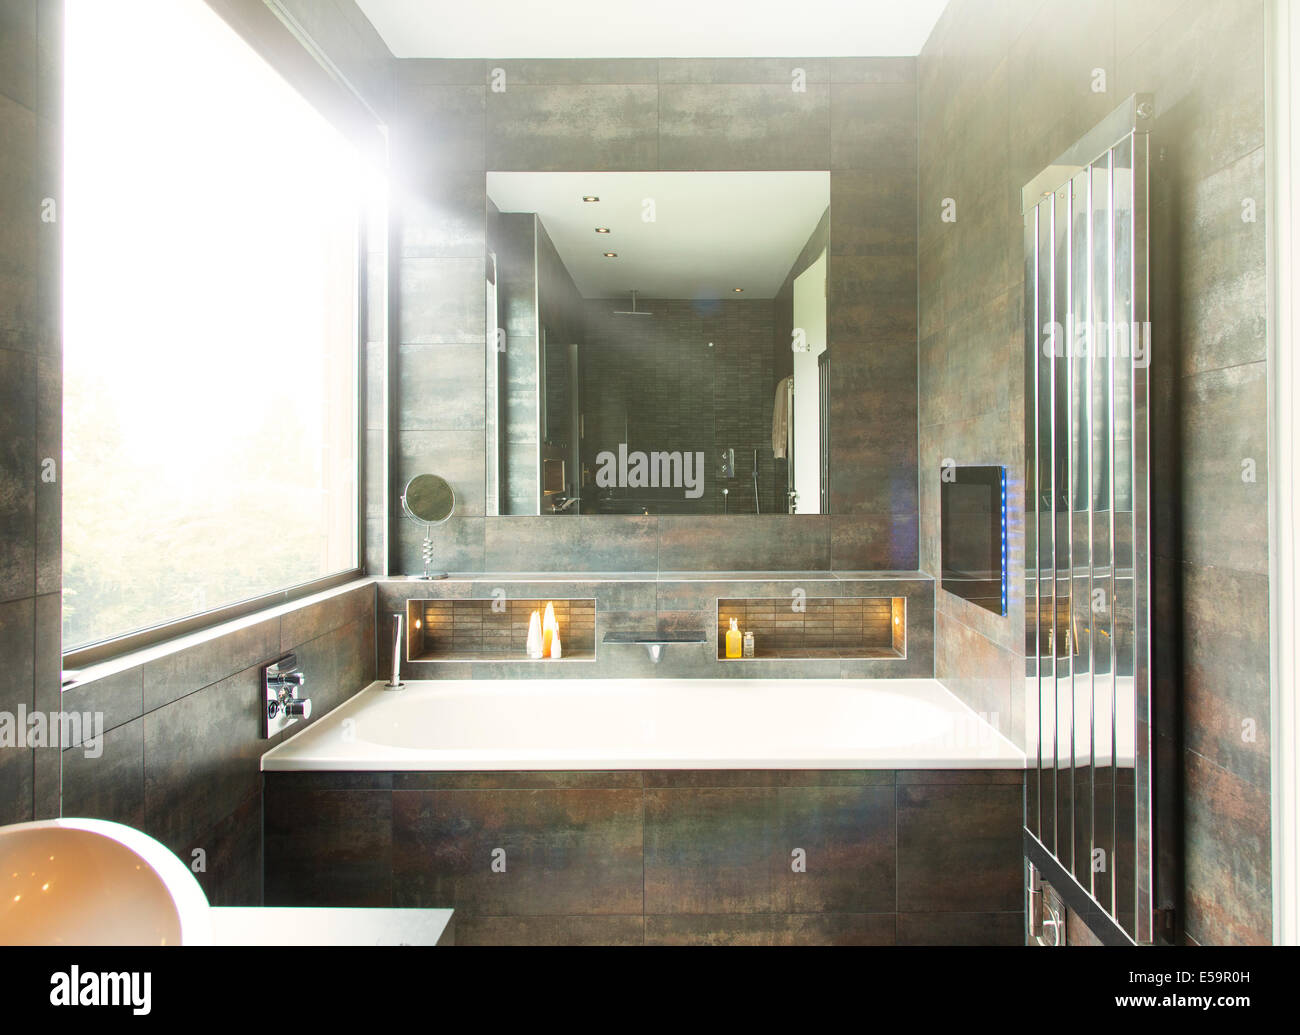 Bathtub and mirror in modern bathroom - Stock Image